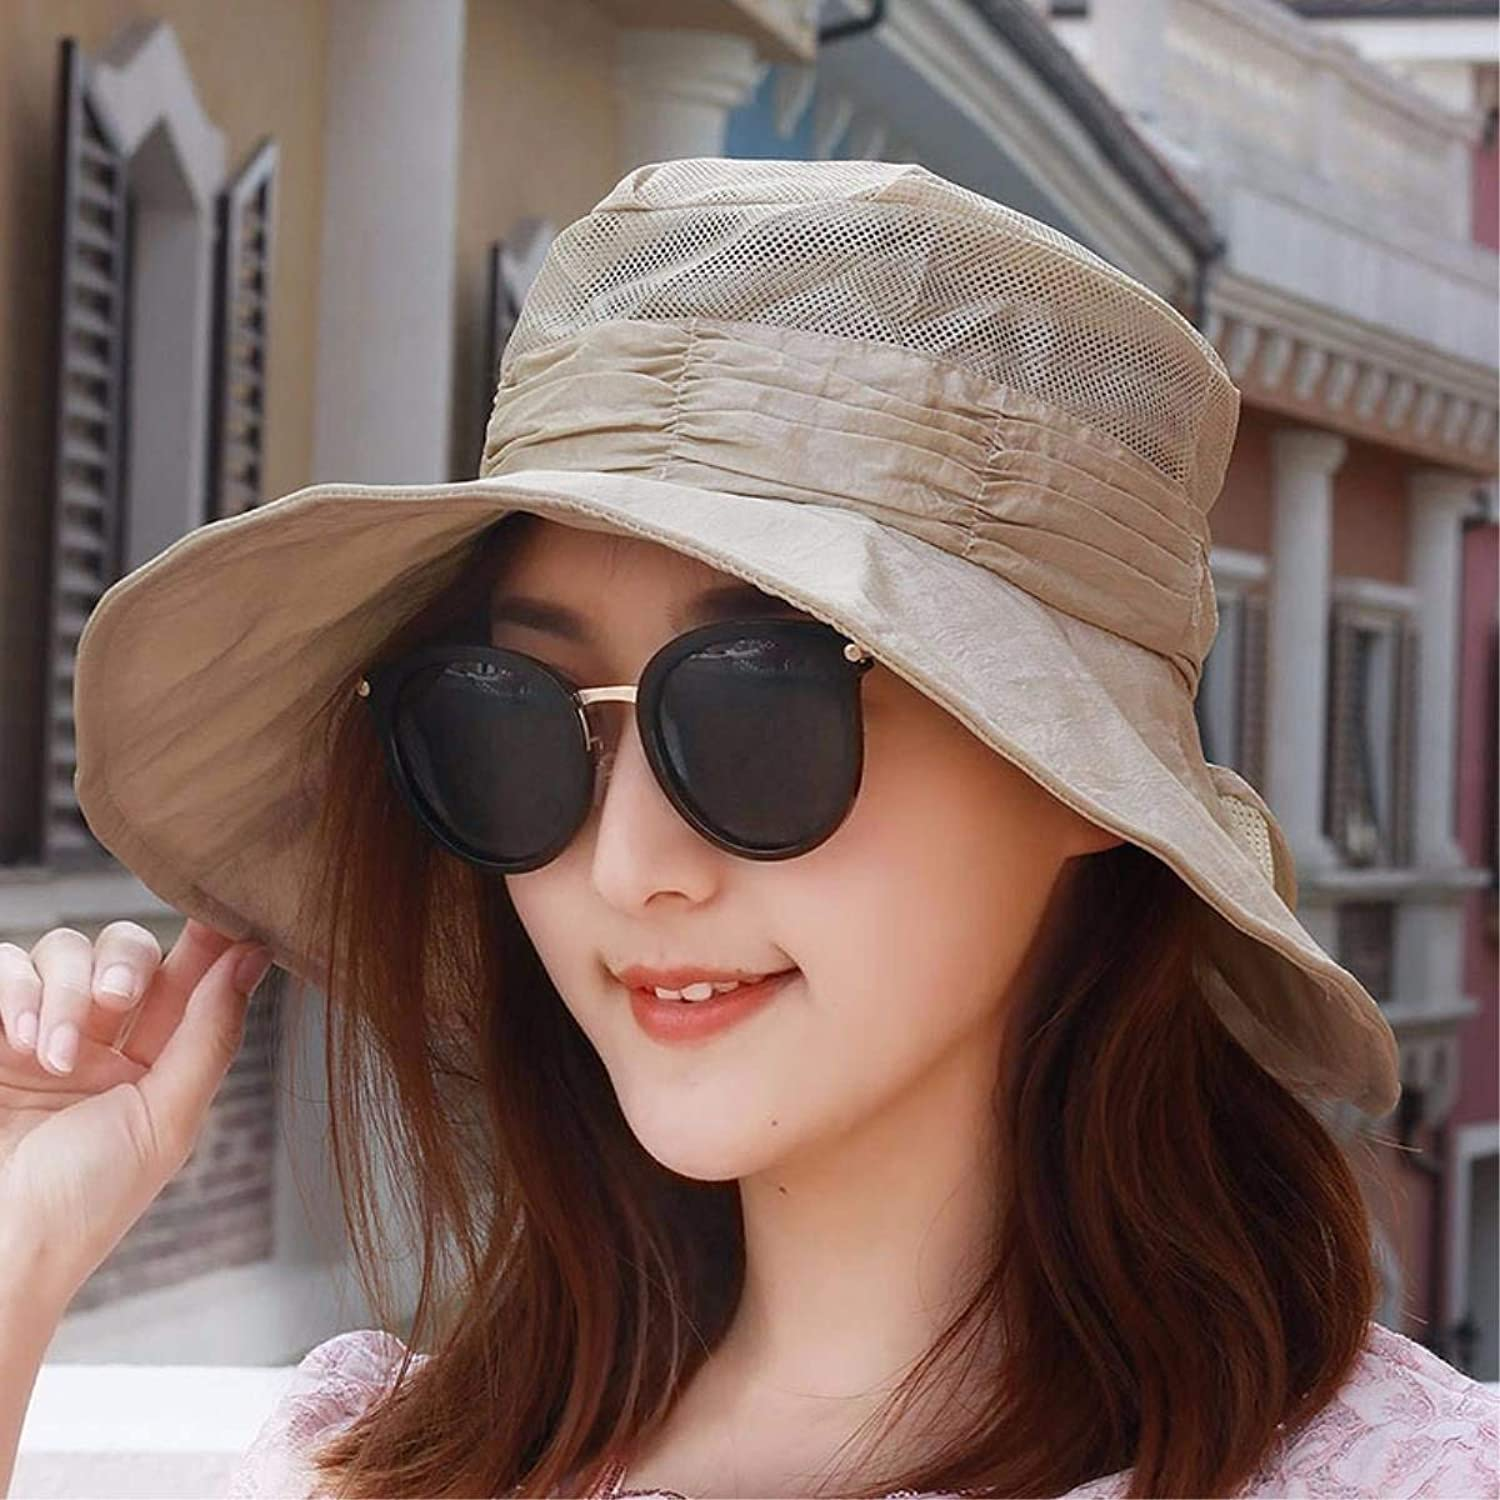 Dianye Summer Visor female large along the hat sun hat sun hat outdoor walking hat beach hat fast dry mouth Cap